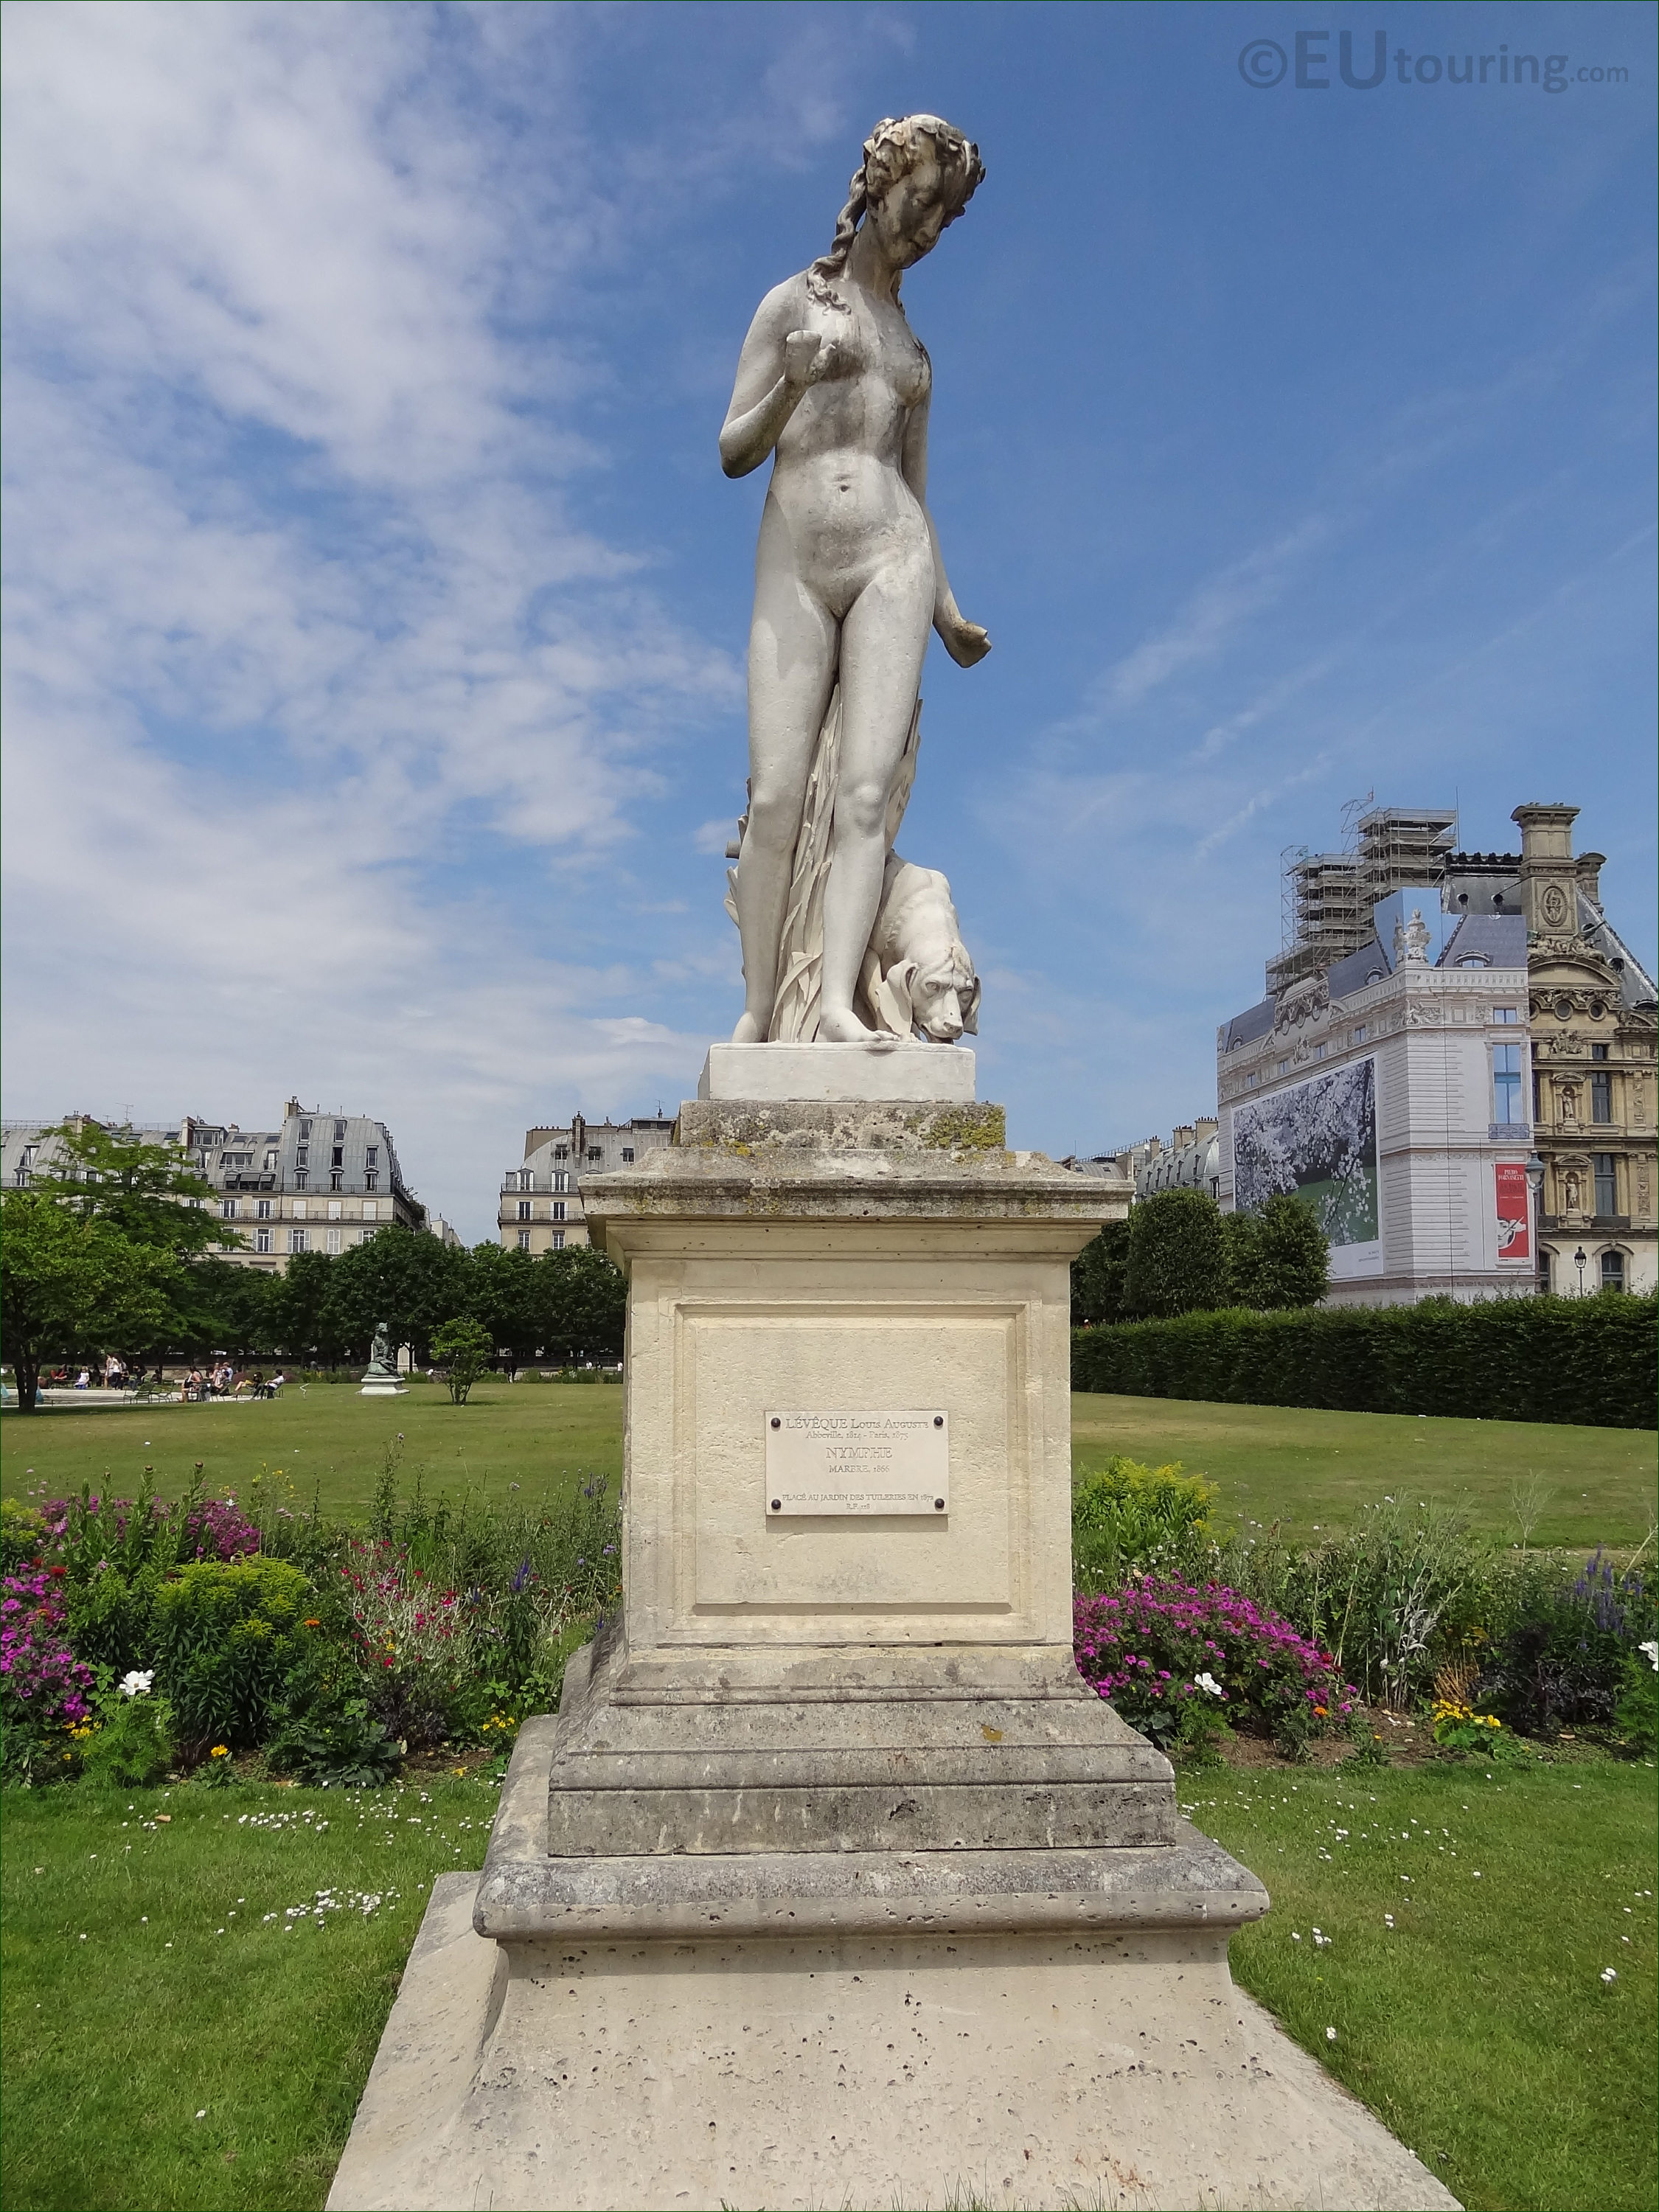 Photos of Nymphe statue inside Jardin des Tuileries - Page 41